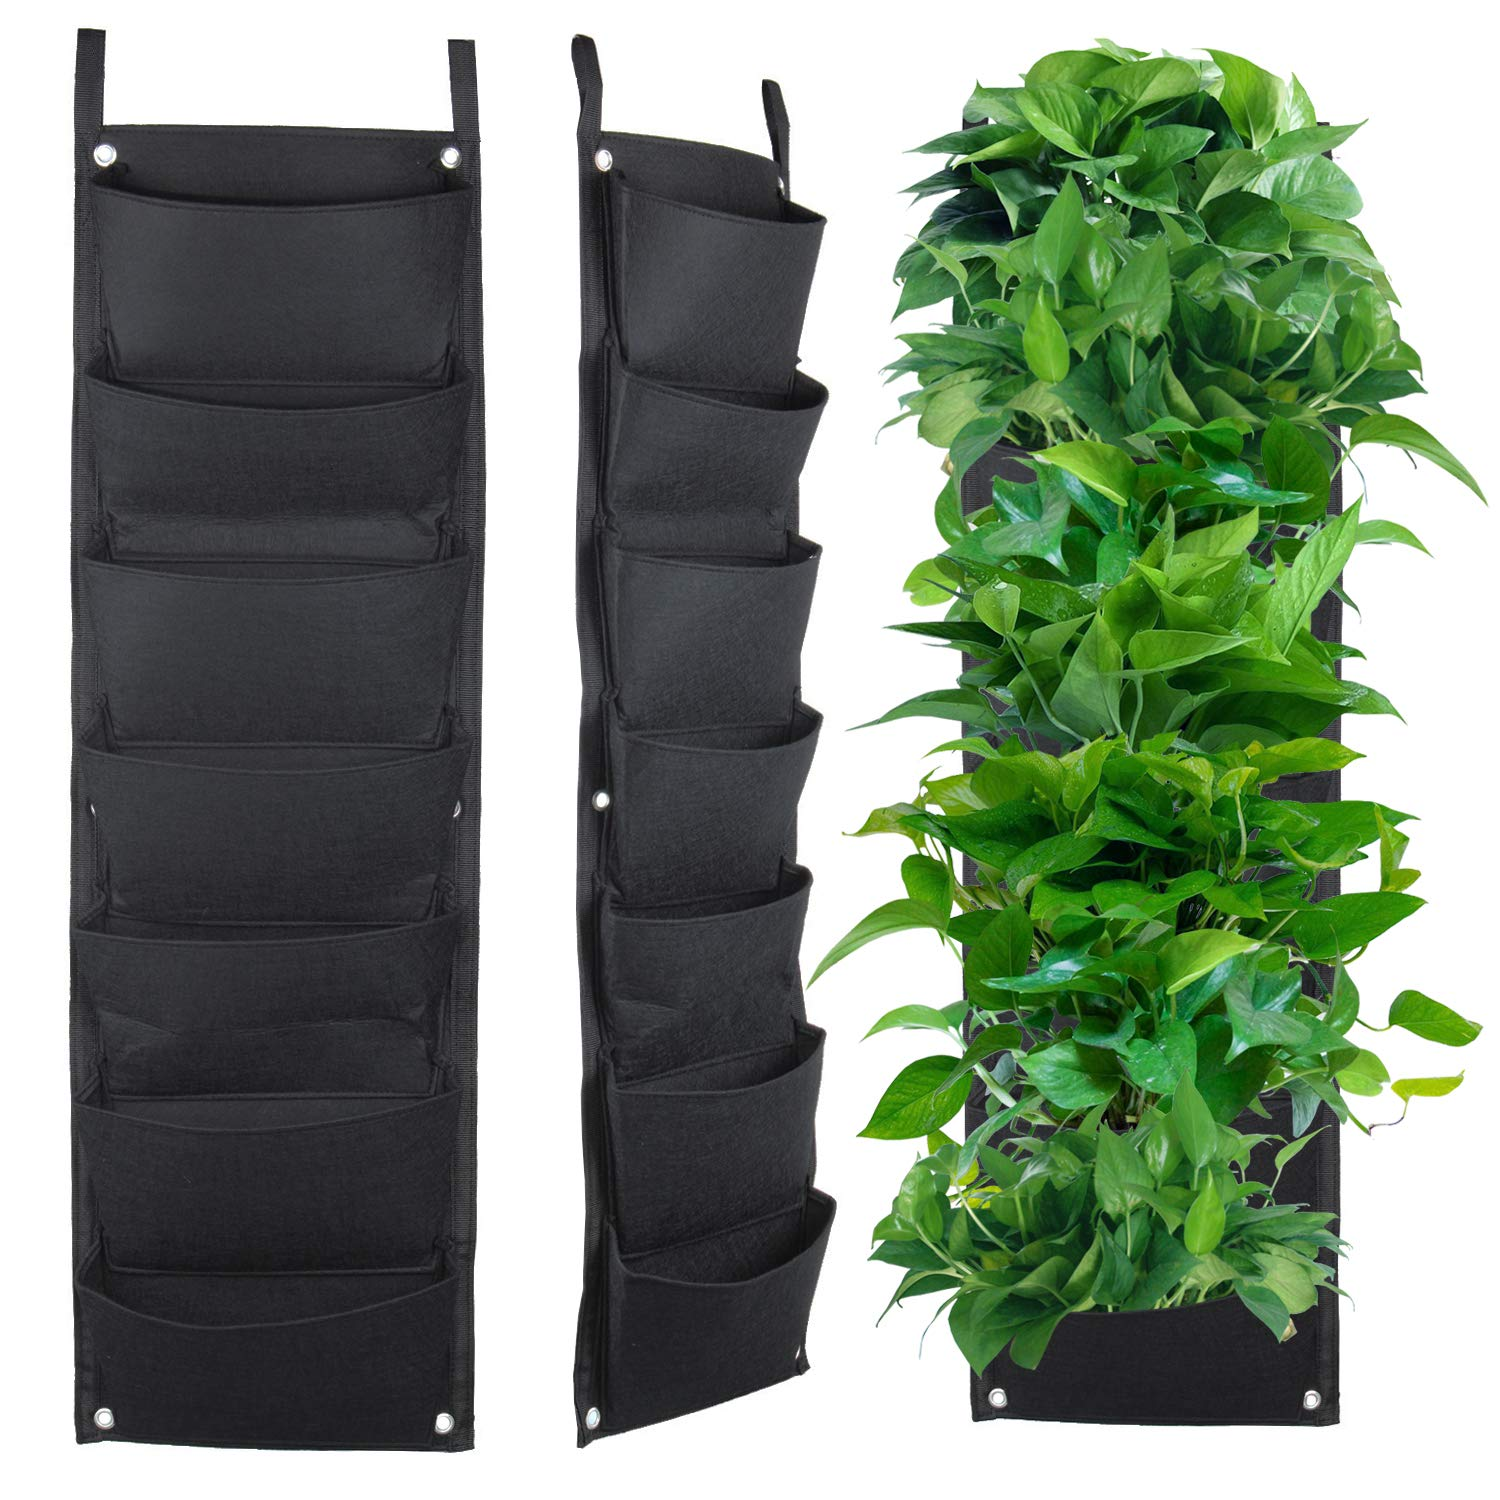 Meiwo 7 Pocket Hanging Vertical Garden Wall Planter For Yard Garden Home Decoration by Meiwo